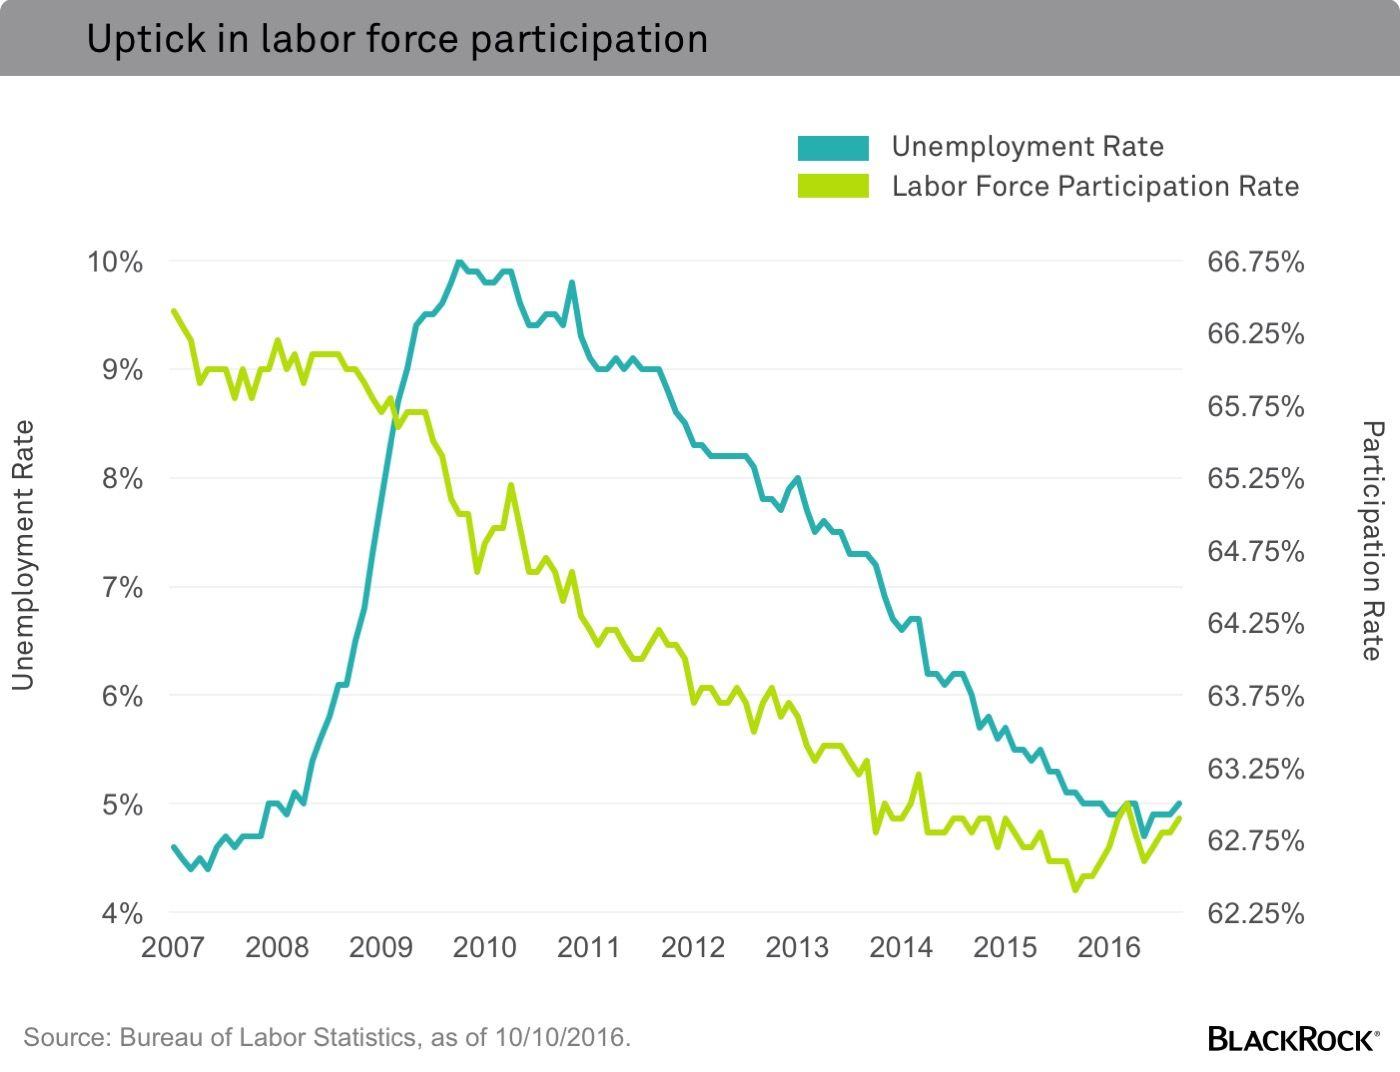 Many market watchers interpreted the September U.S. jobs report as a bit of a disappointment, as jobs growth came in slightly weaker than expected. But I think